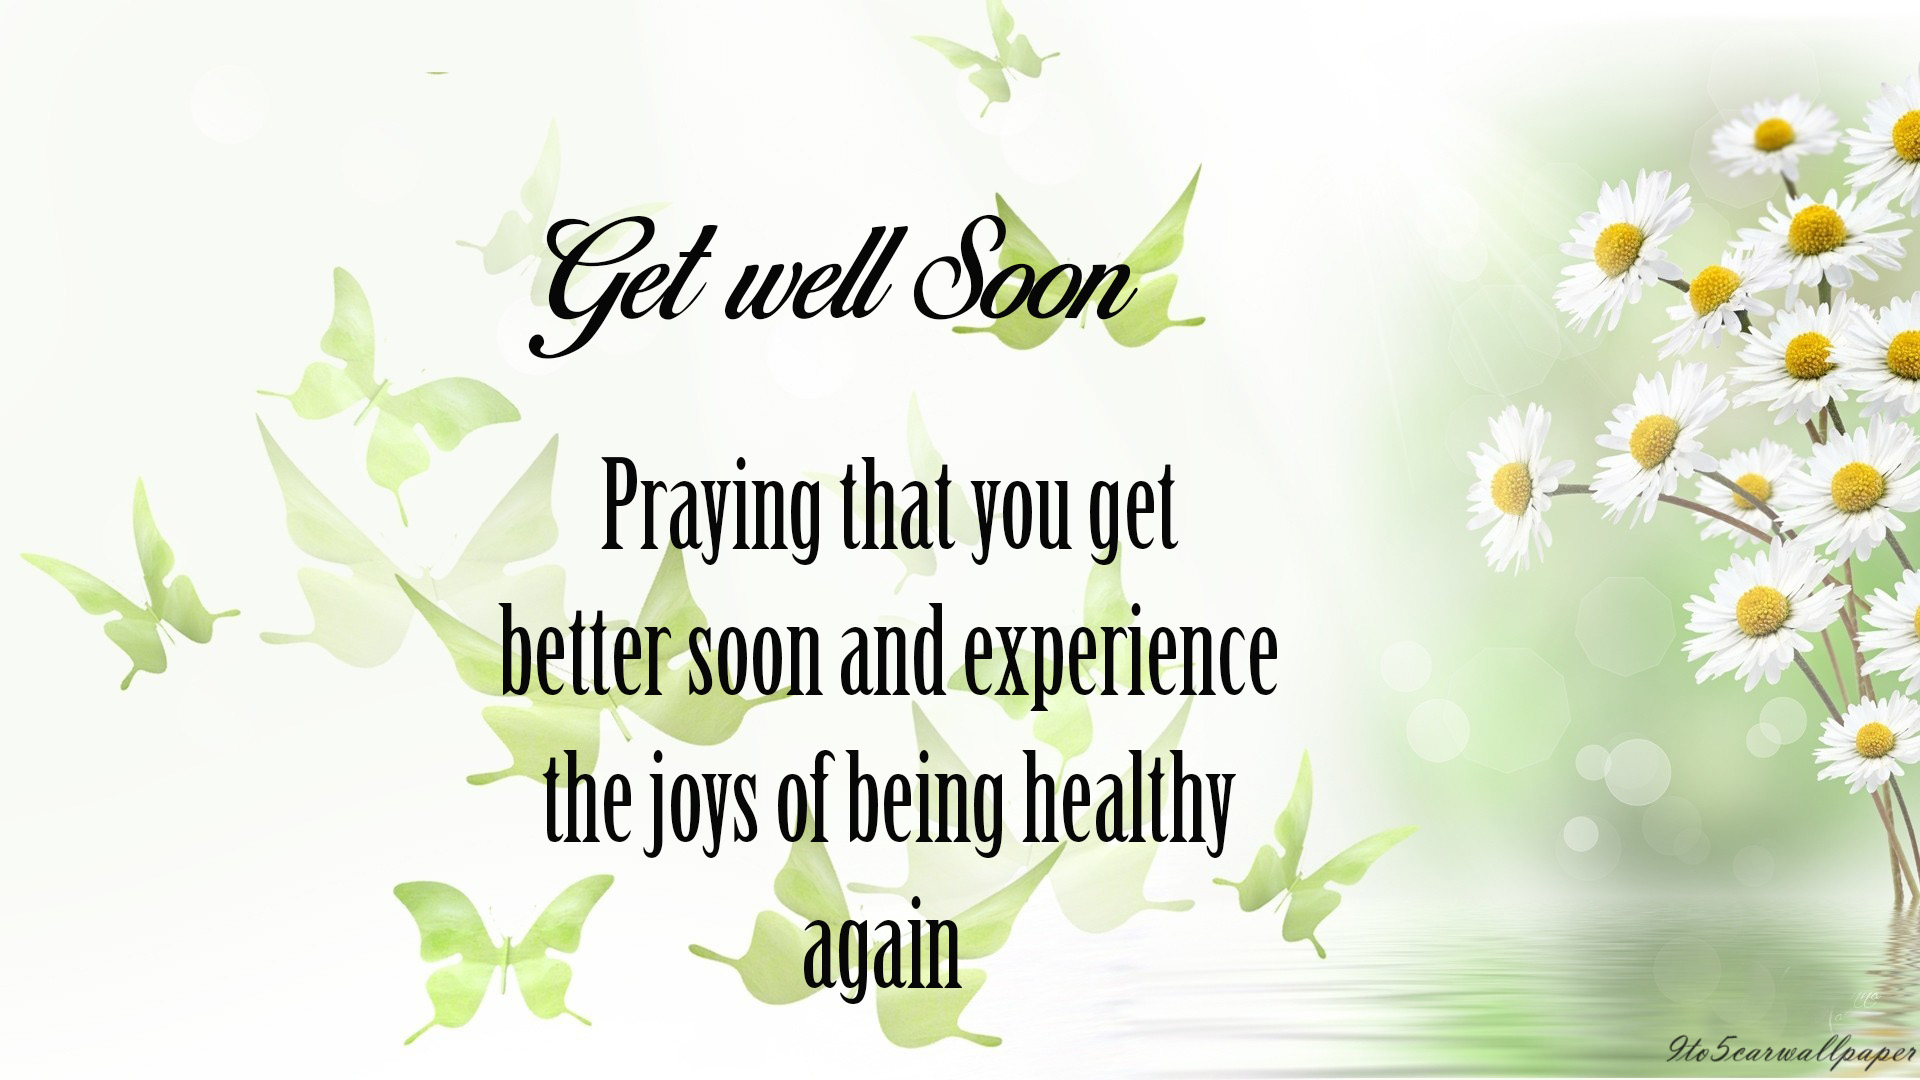 Feel Better Soon Quotes Get Better Soon Wishes & Quotes 2018  Car Wallpapers